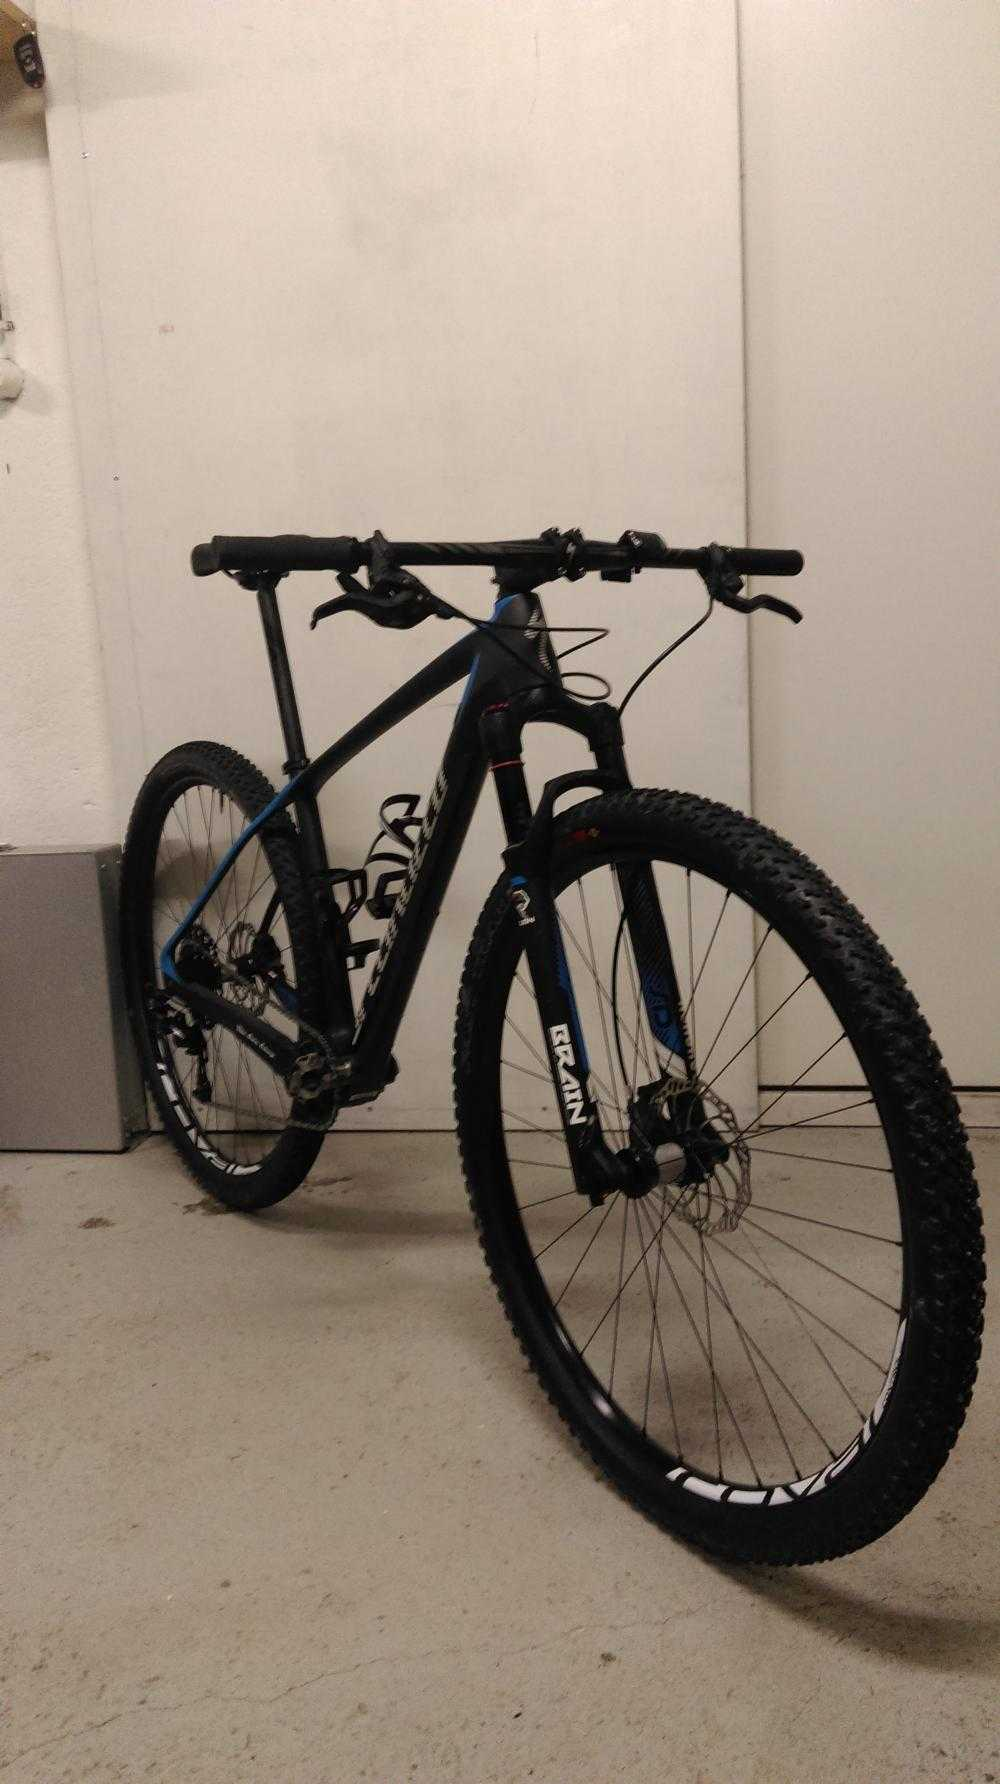 Mountainbike kaufen: SPECIALIZED Stumpjumper Elite WC Occasion